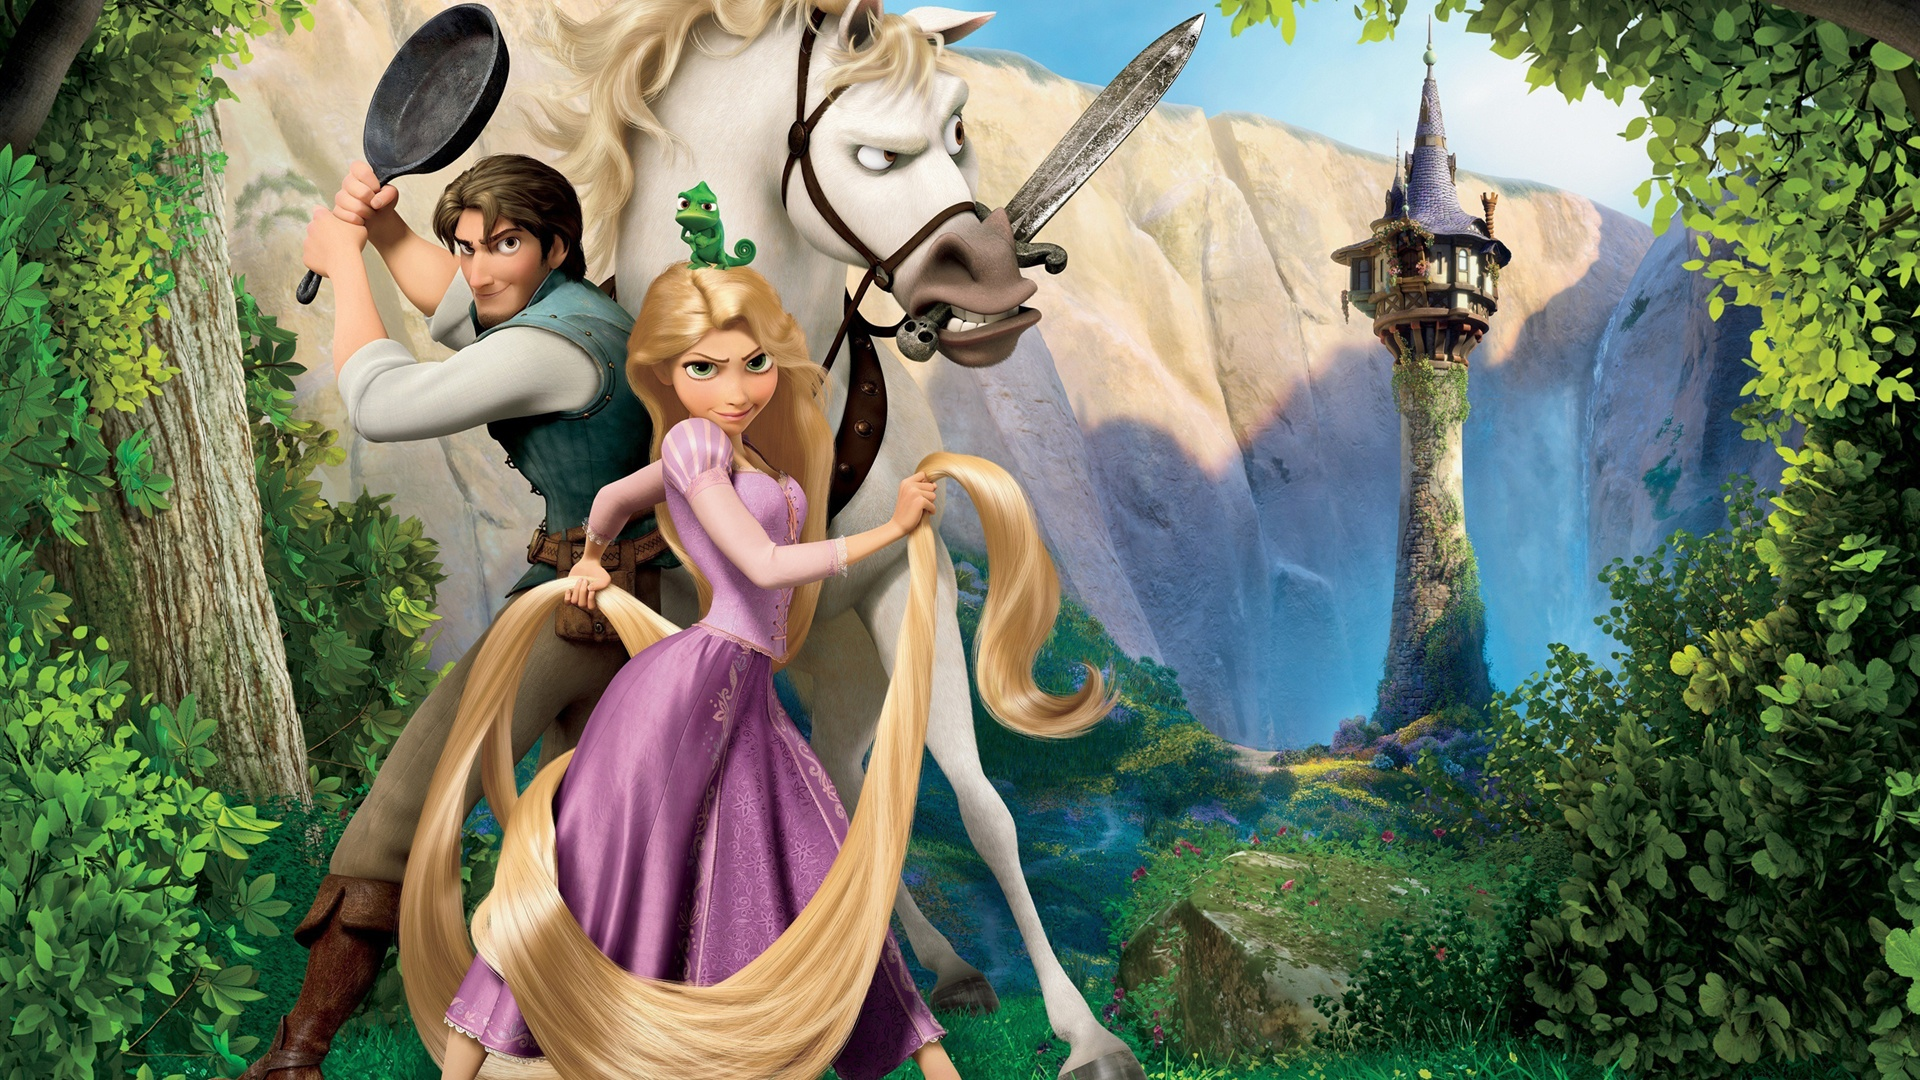 Wallpaper Disney Movie Tangled 2560x1920 Hd Picture Image